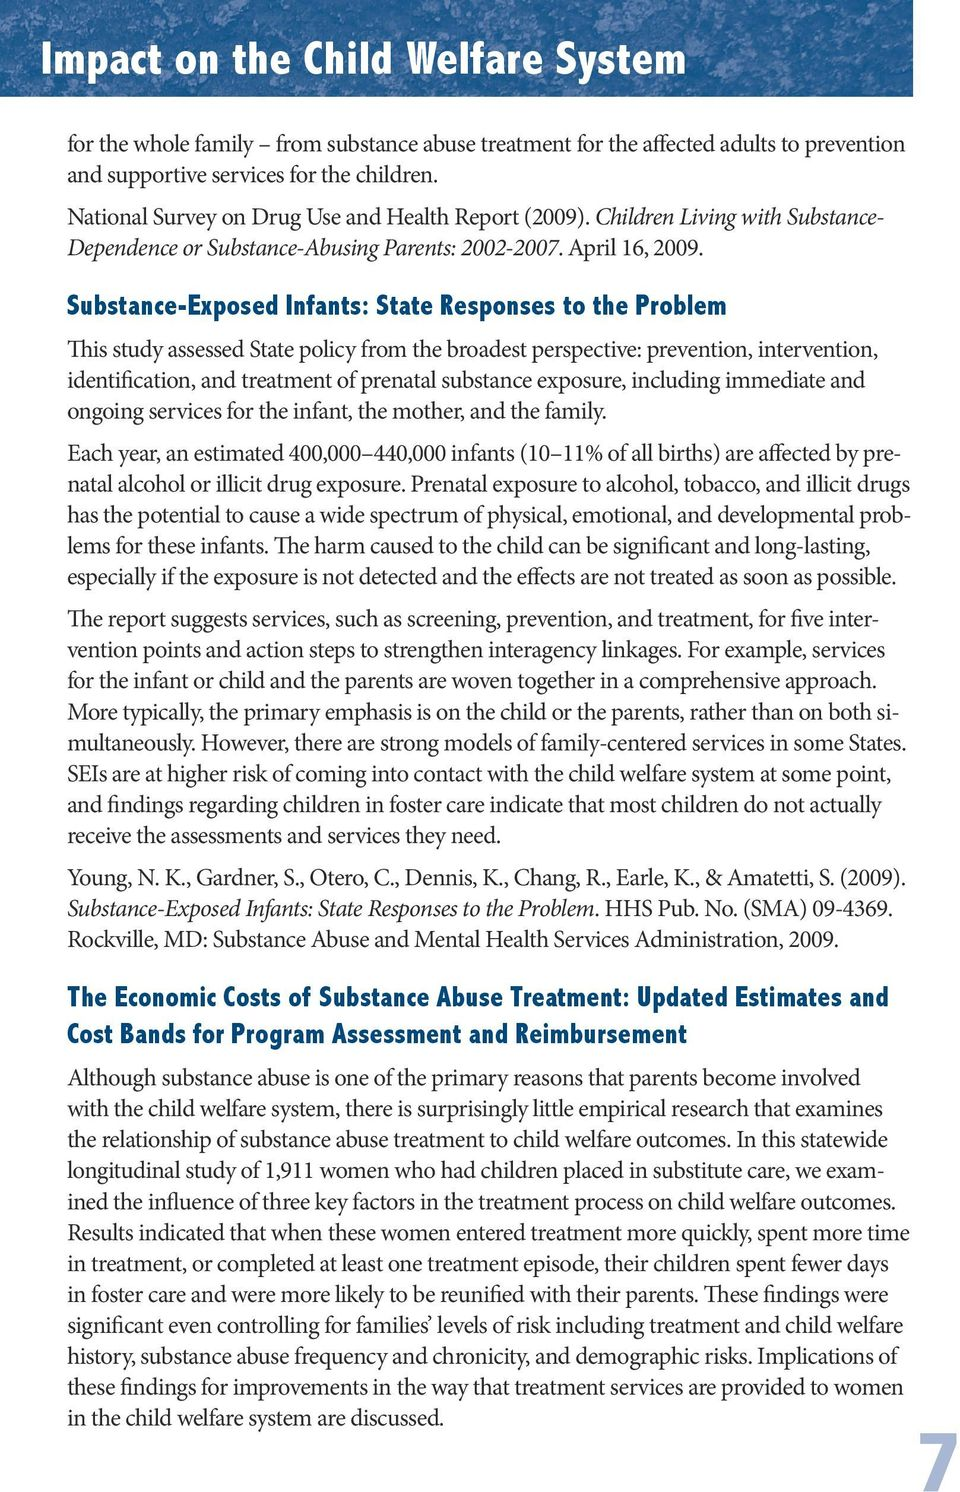 Substance-Exposed Infants: State Responses to the Problem This study assessed State policy from the broadest perspective: prevention, intervention, identification, and treatment of prenatal substance